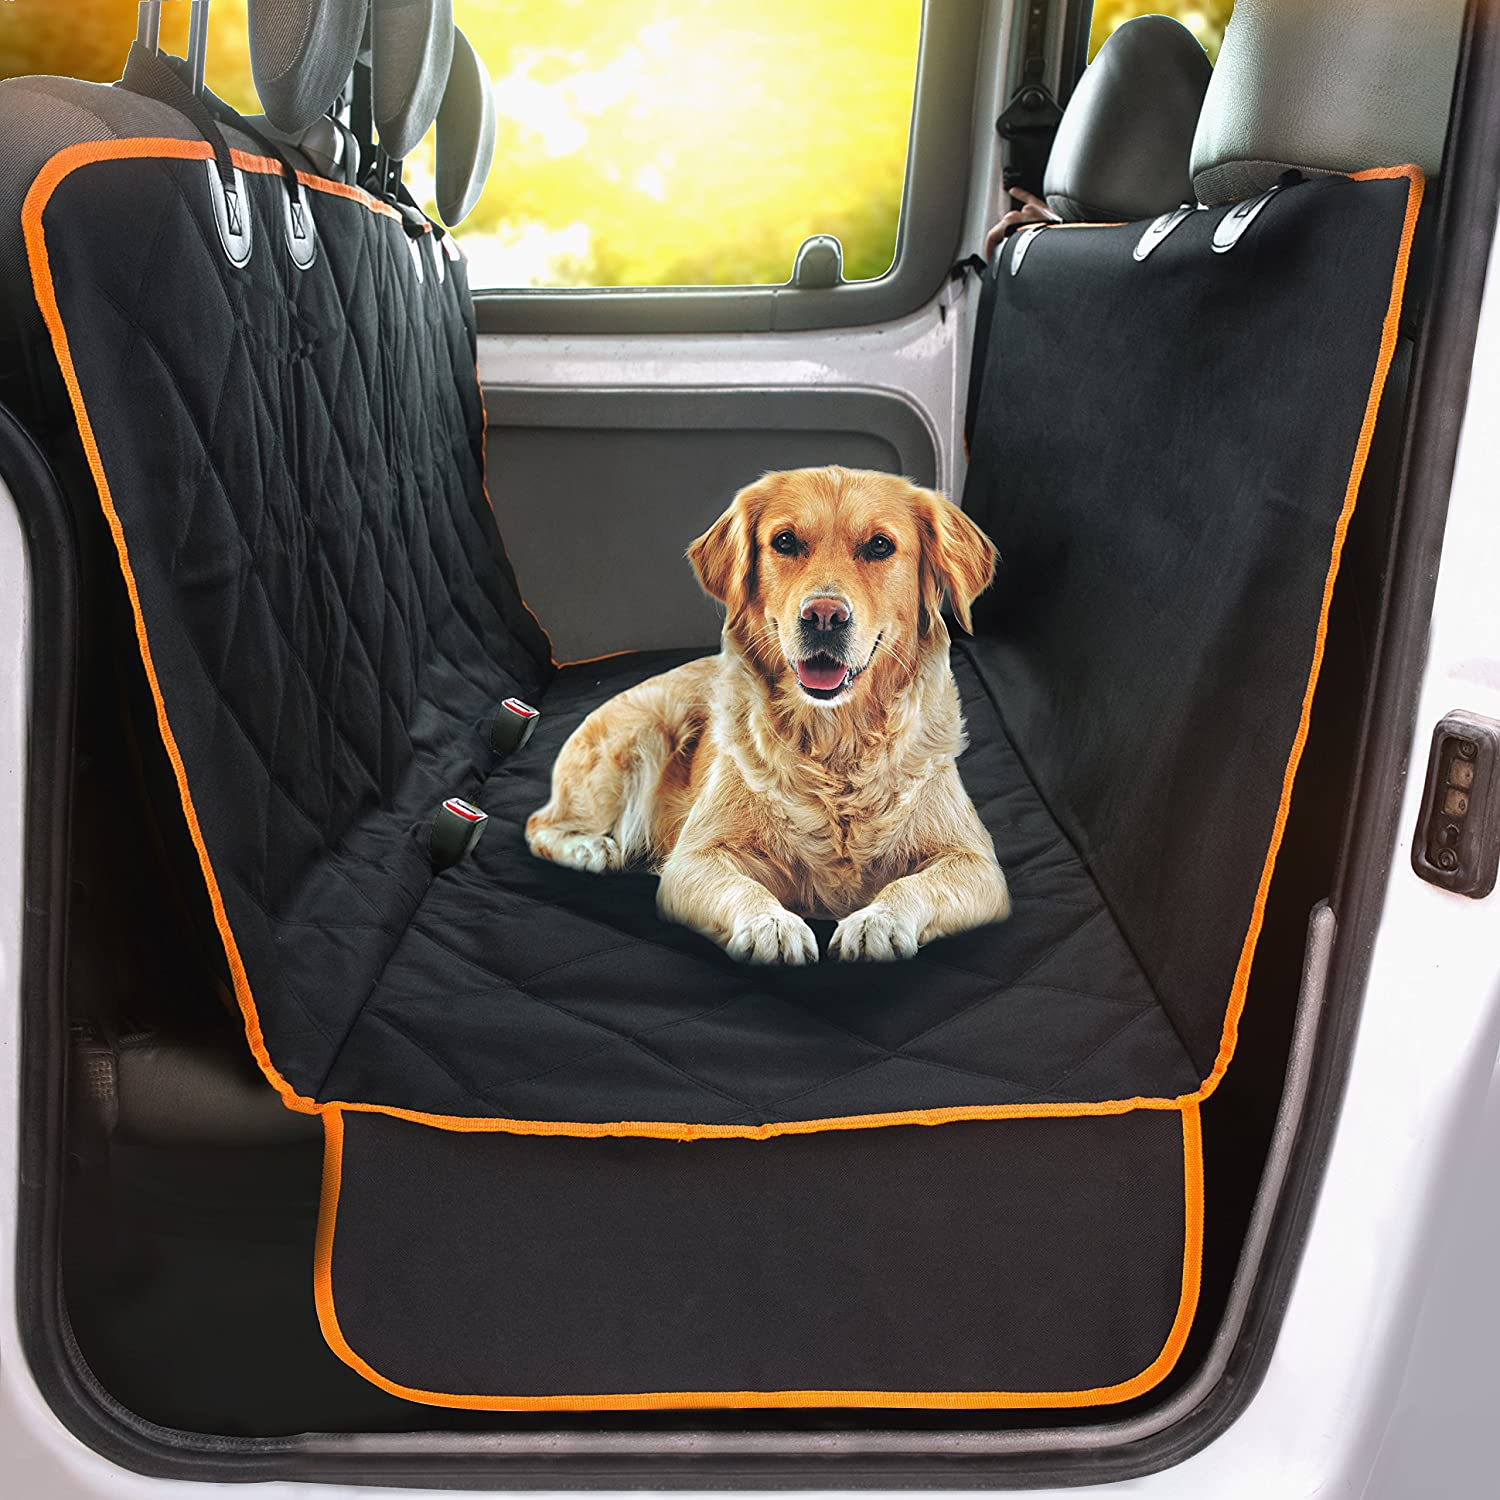 Doggie World Dog Car Seat Cover Cars Trucks And Suvs Luxury Full Protector W Extra Side Flaps Seat Belt Openings Hammock Convertible For Your